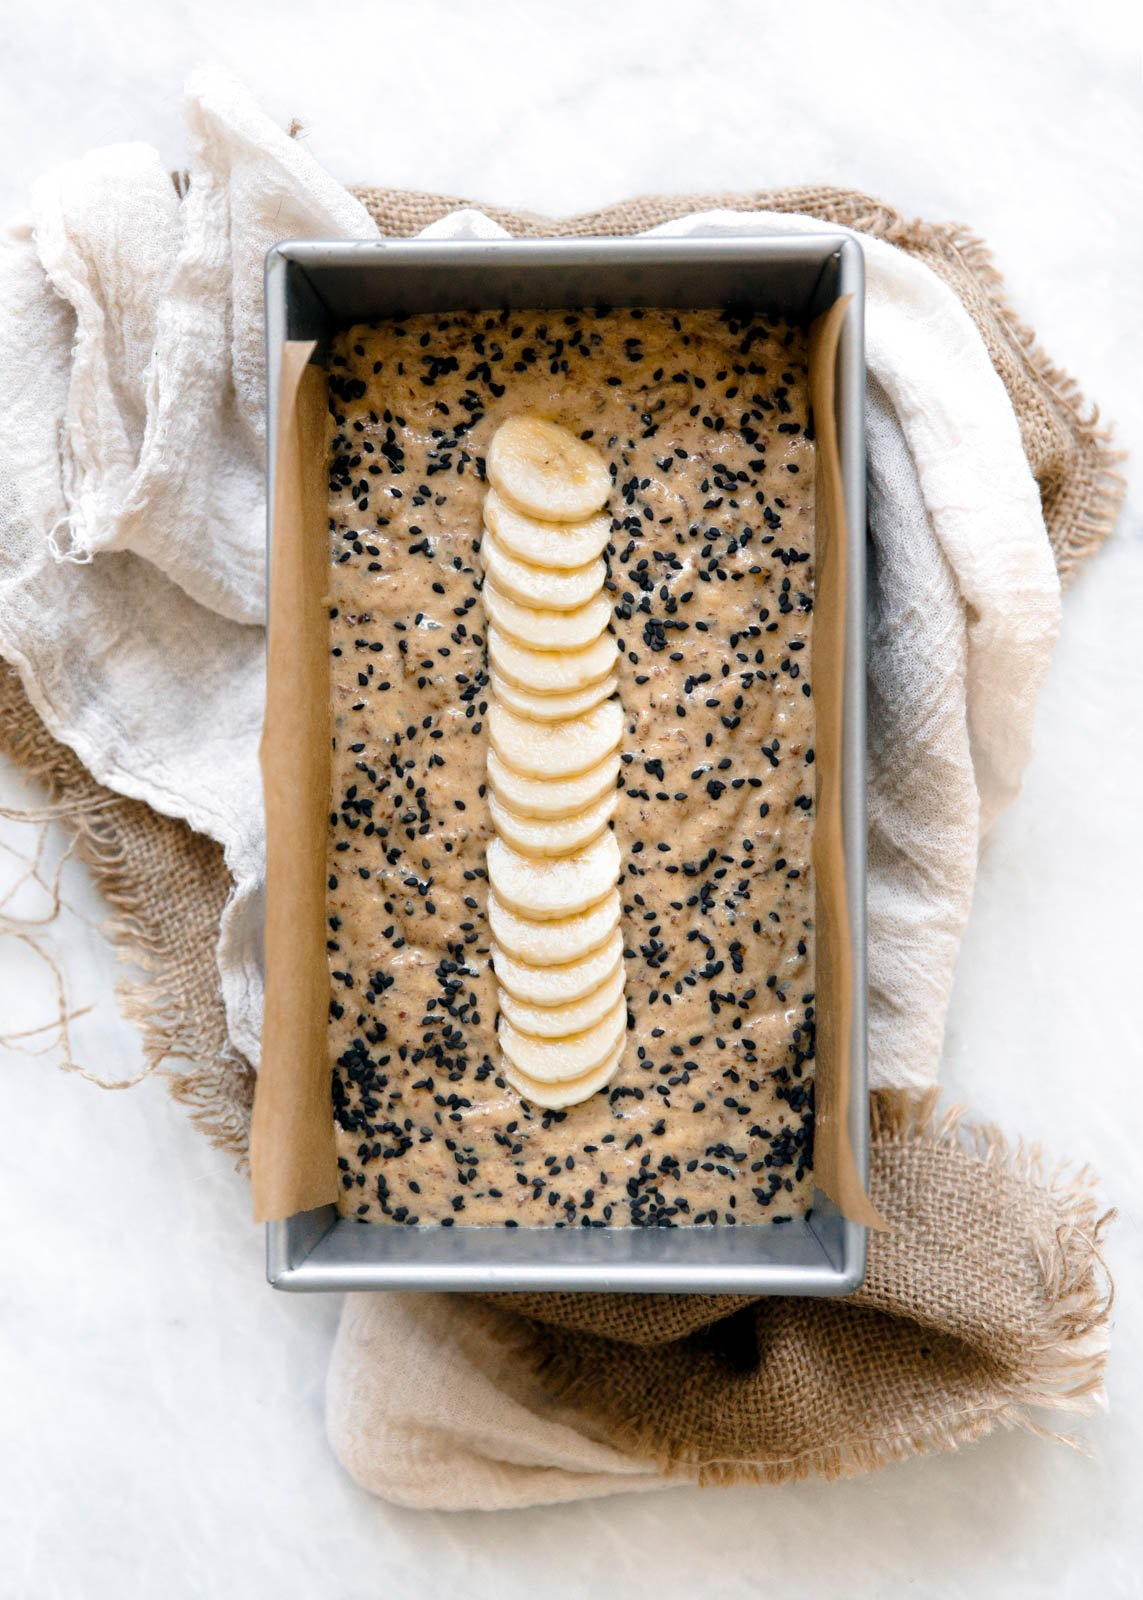 Healthy Tahini Banana Bread made with whole wheat flour, flaxseed, sesame seeds and naturally sweetened with honey. This healthy bread is wonderful toasted with a drizzle of honey.